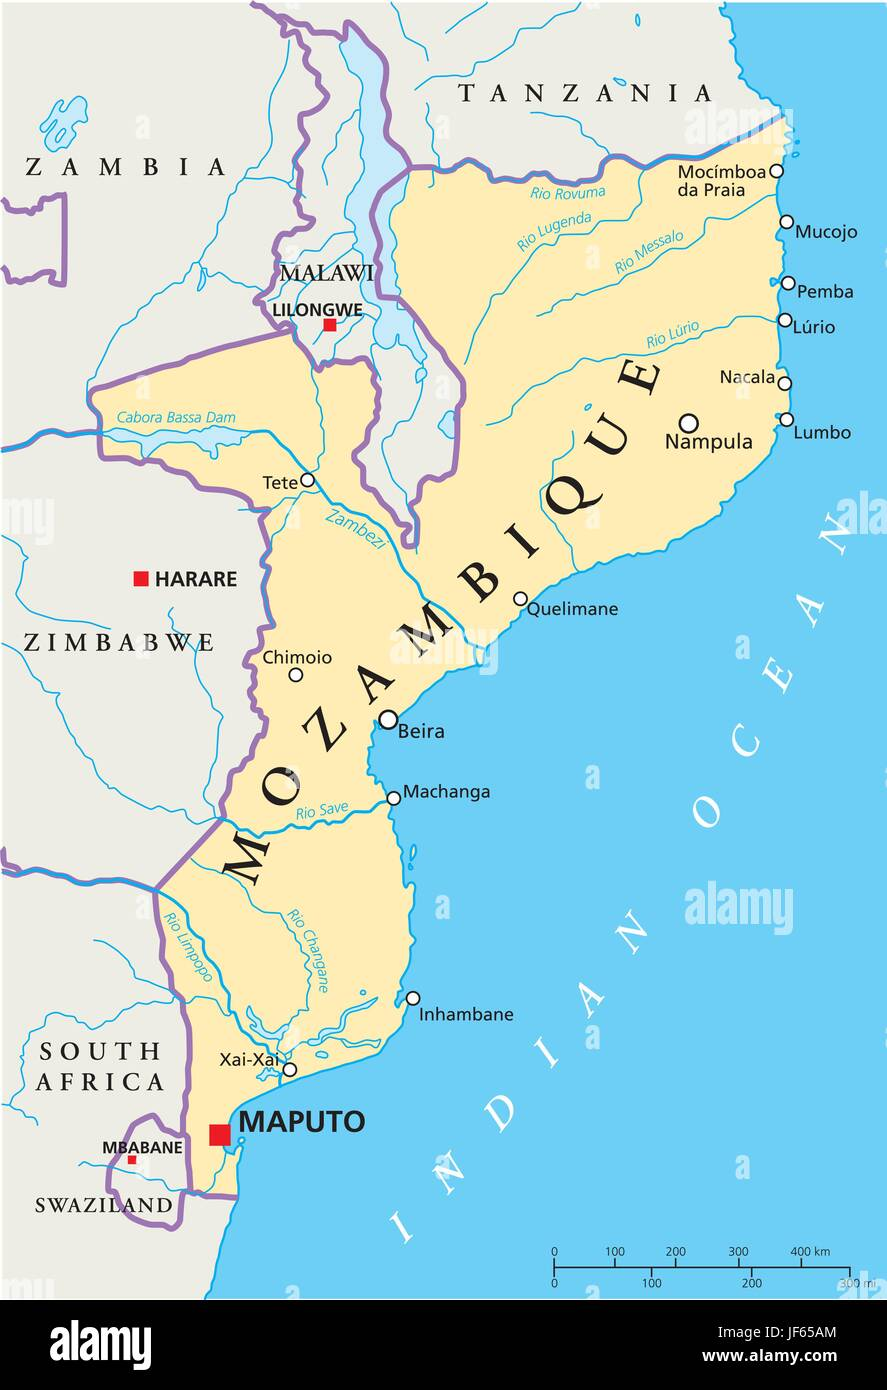 map of mozambique and south africa Mozambique Map Atlas Map Of The World Travel Africa Stock map of mozambique and south africa